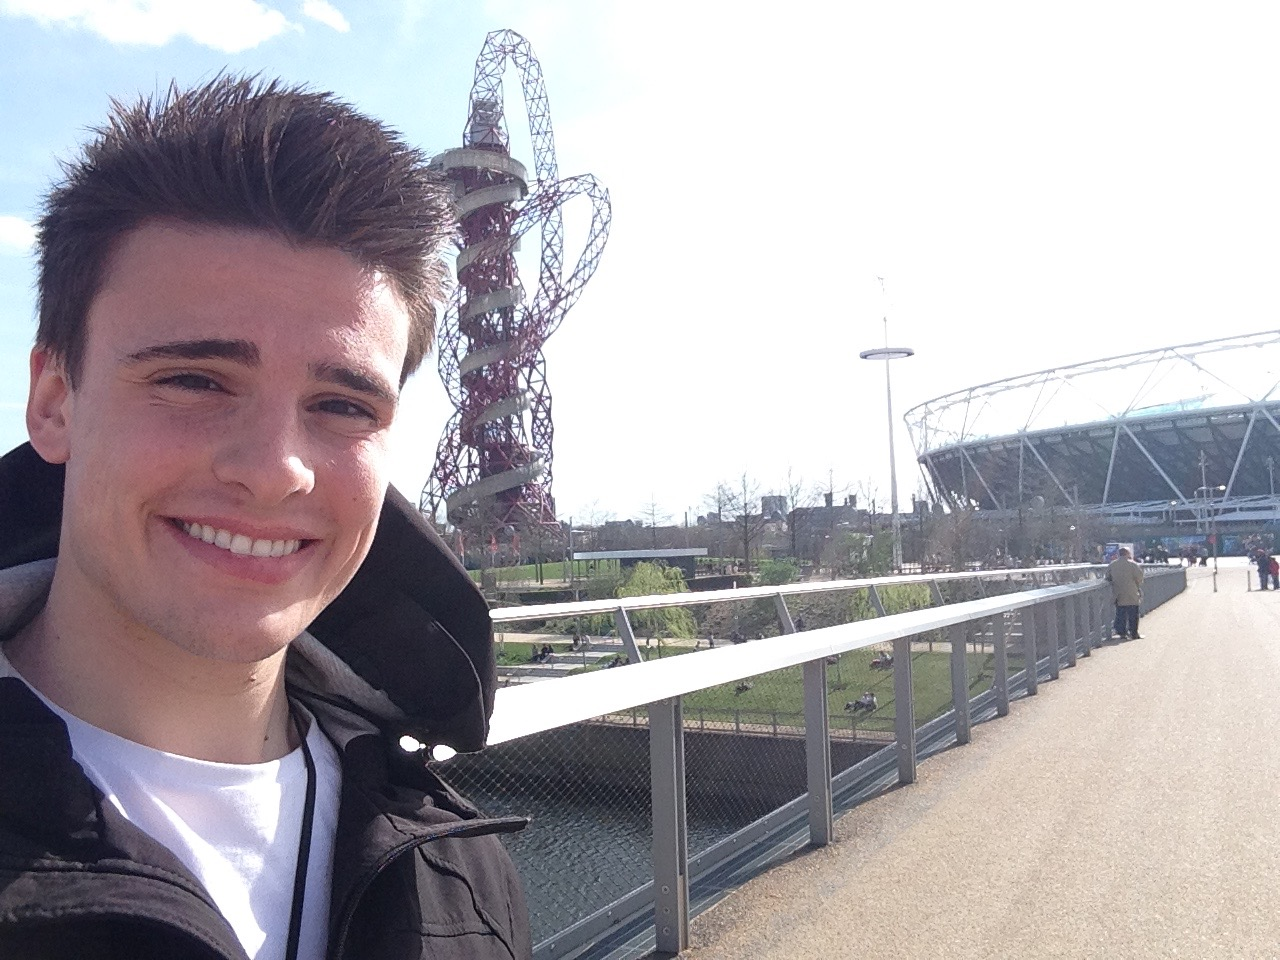 Olympic Park - London, England